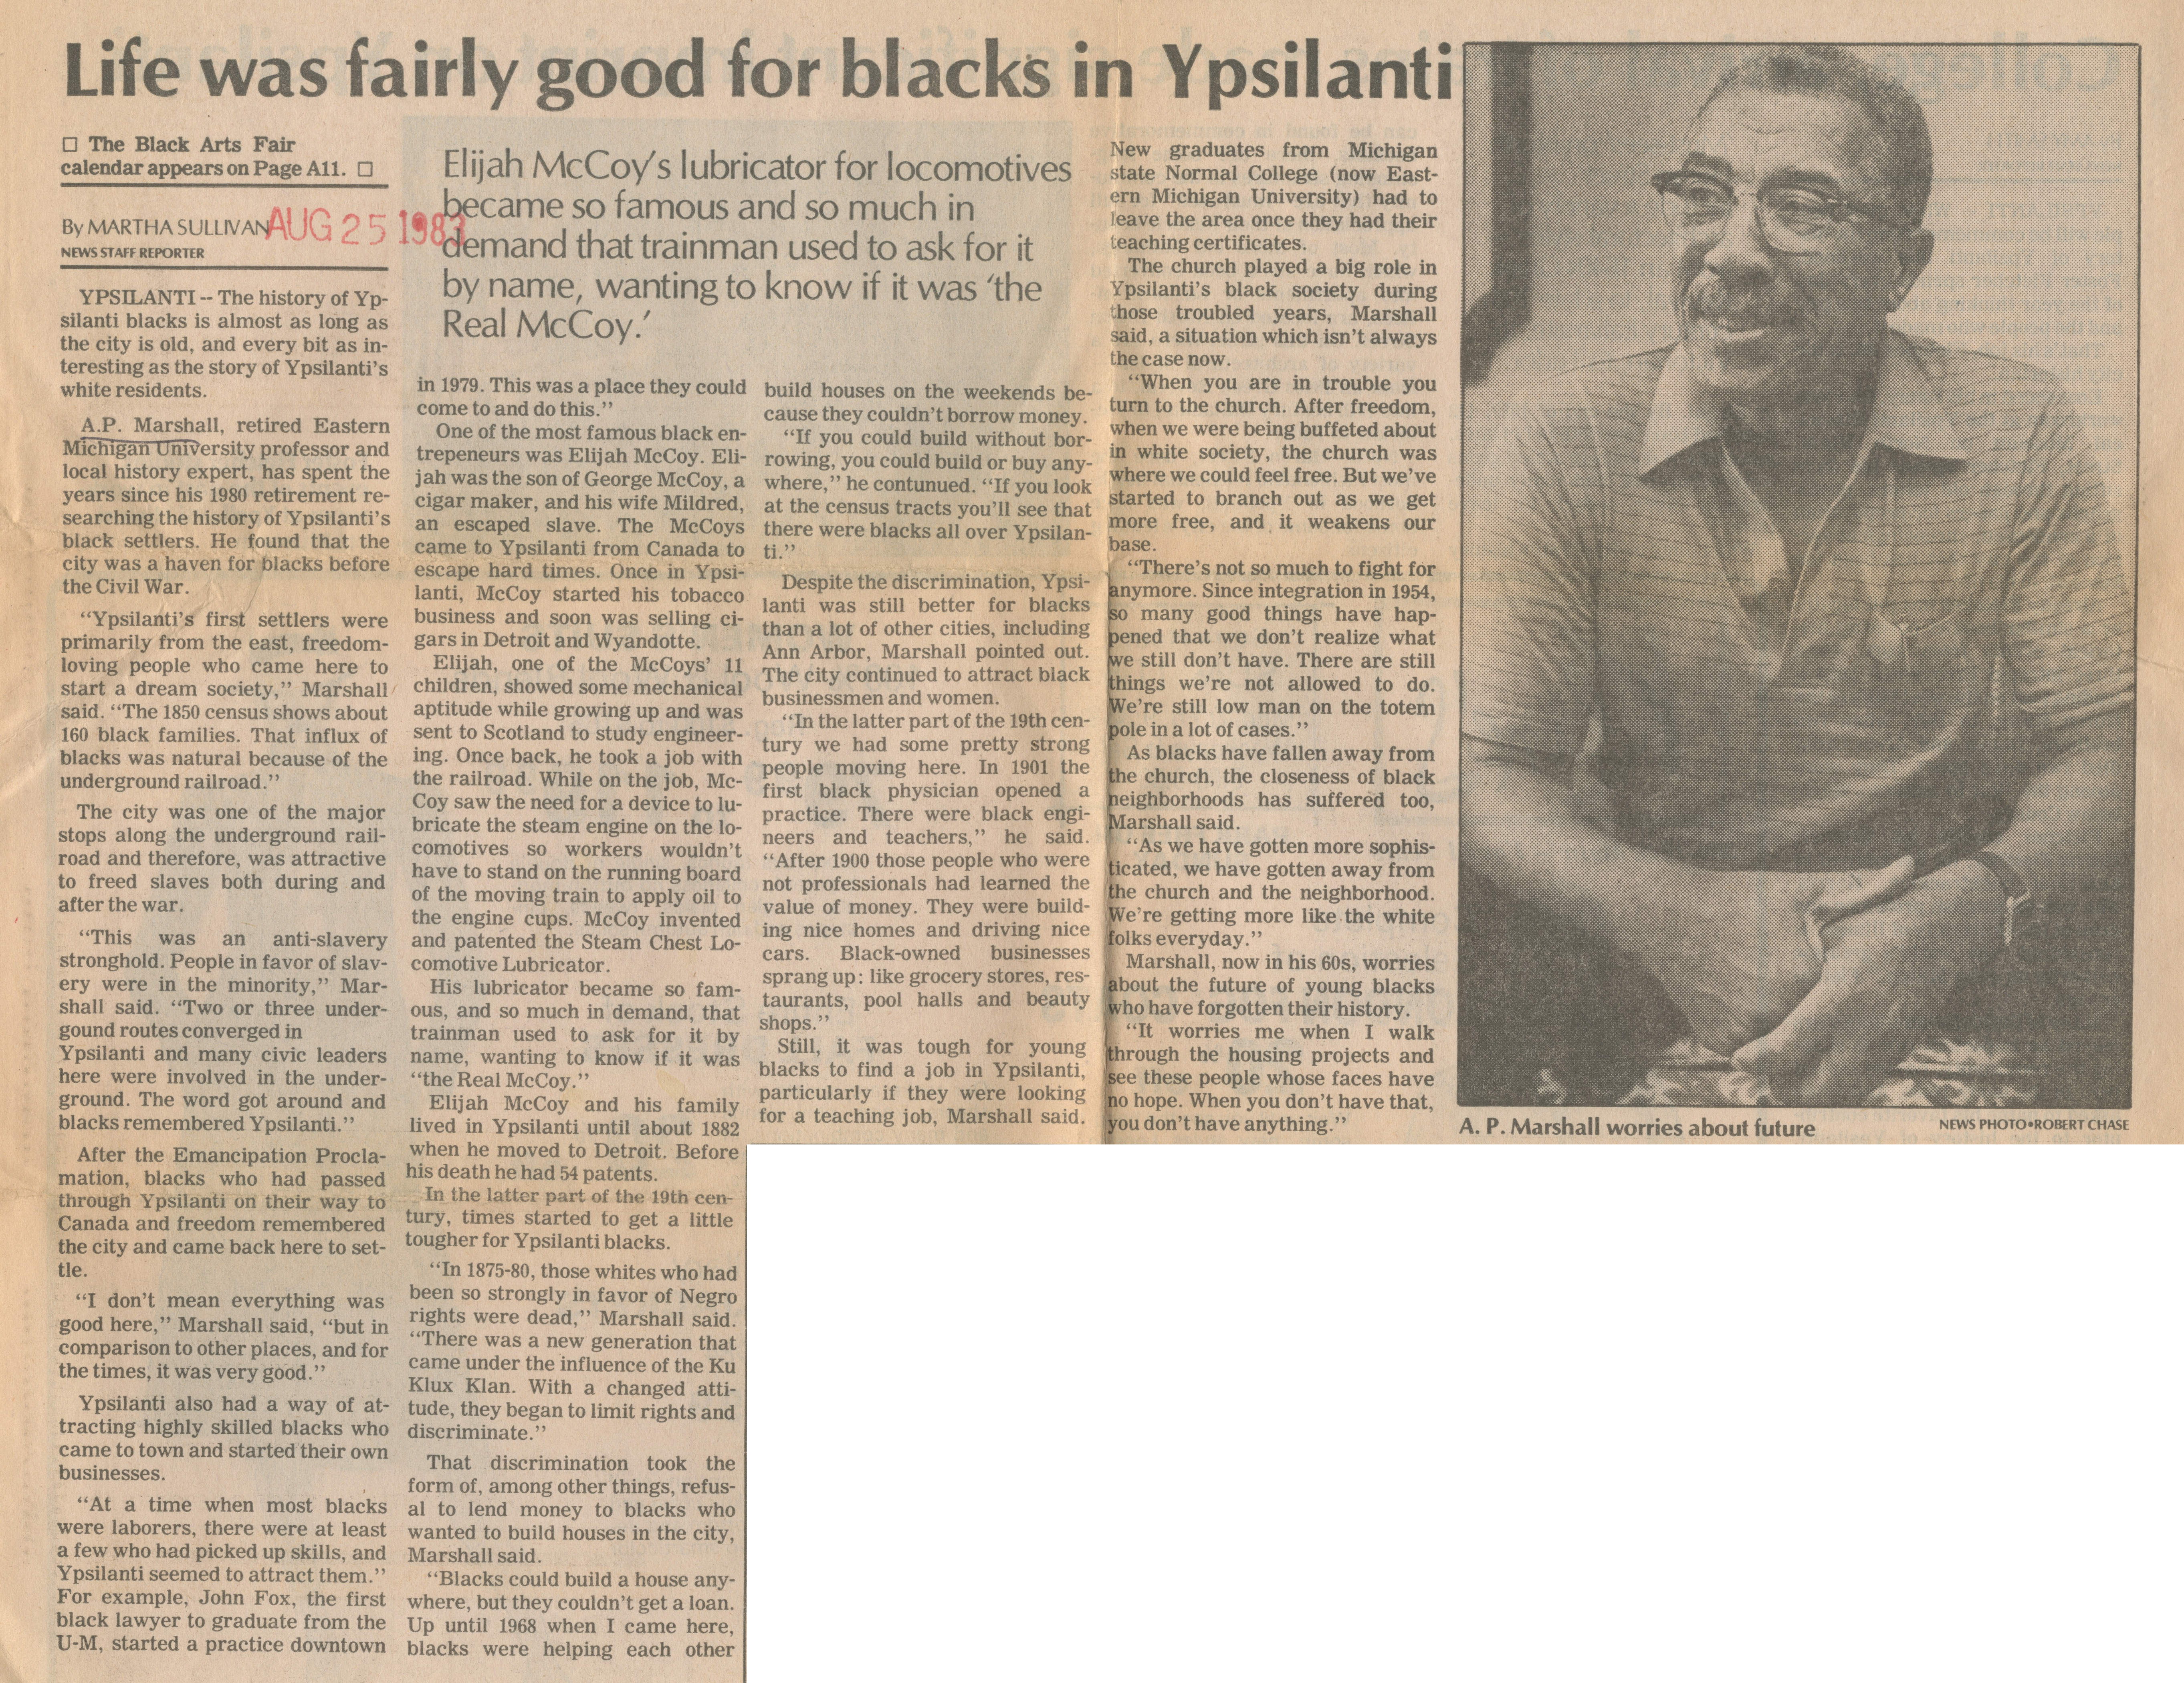 Life Was Fairly Good for Blacks in Ypsilanti image